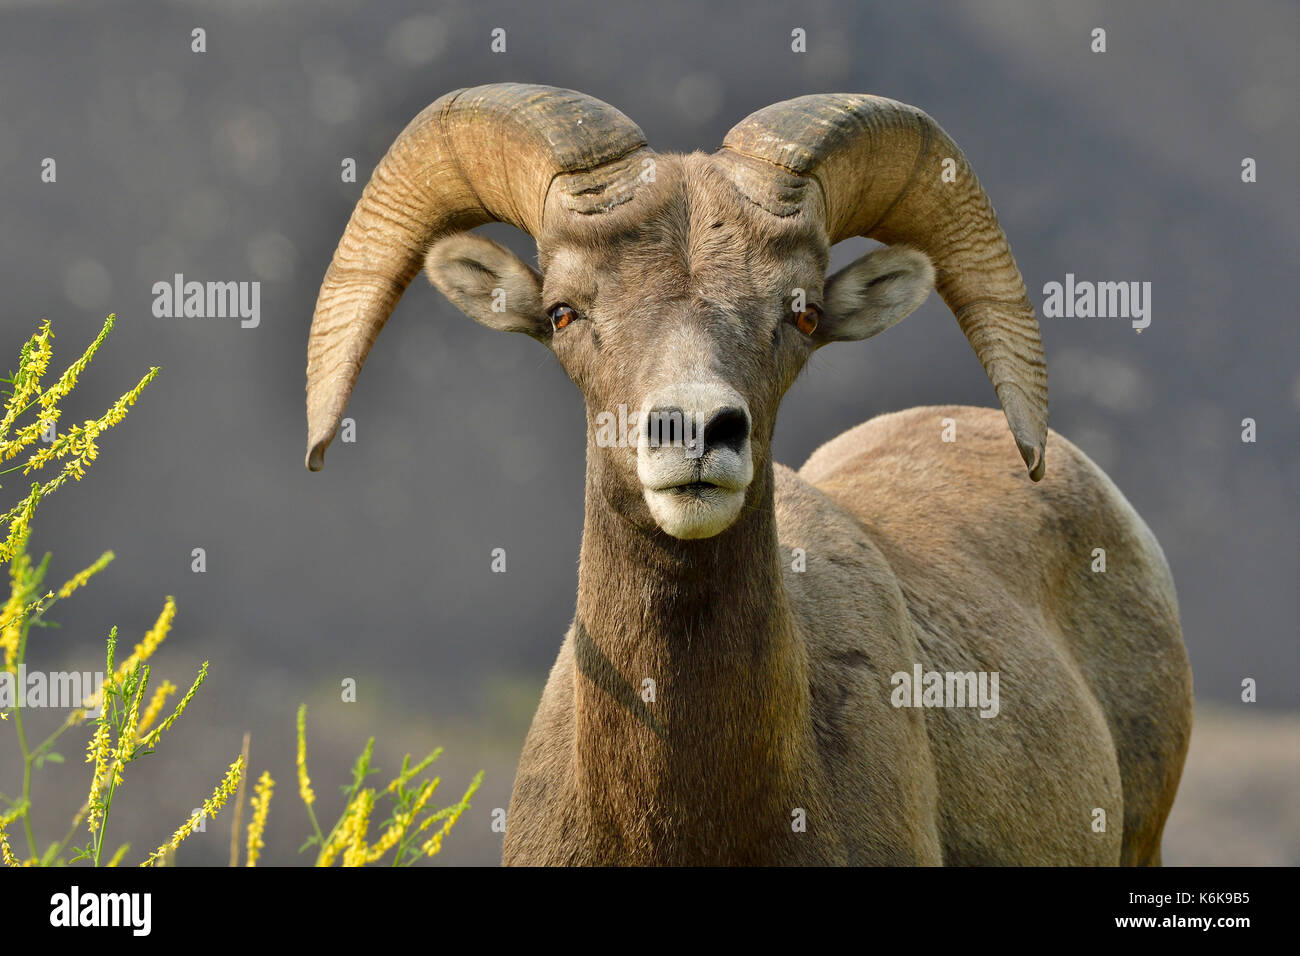 An adult Bighorn Sheep  'Ovis canadensis'; looking forward near Cadomin Alberta Canada - Stock Image